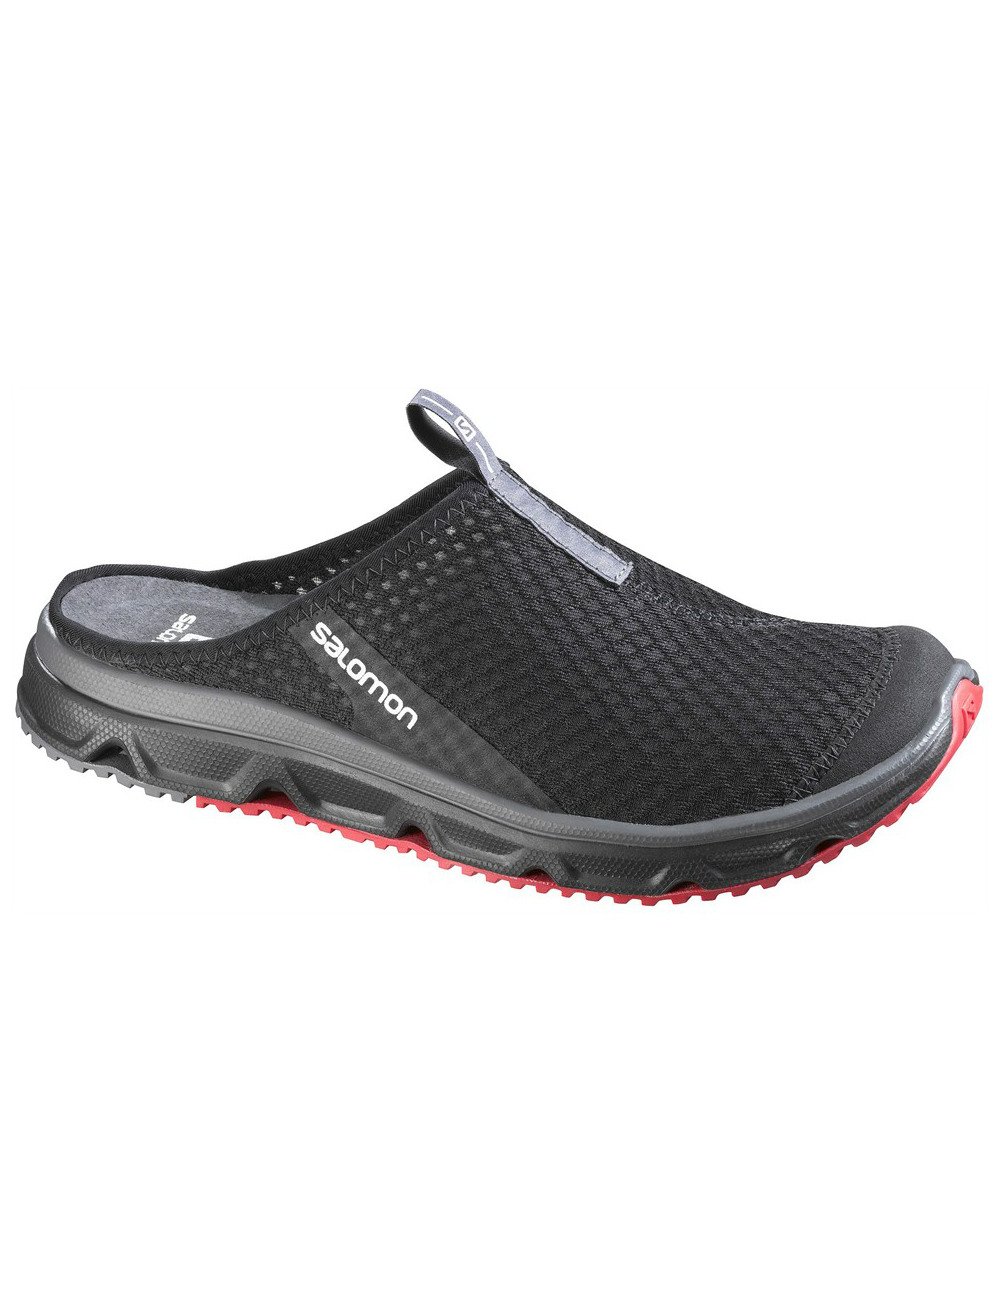 Salomon RX Slide 3.0 (327523)